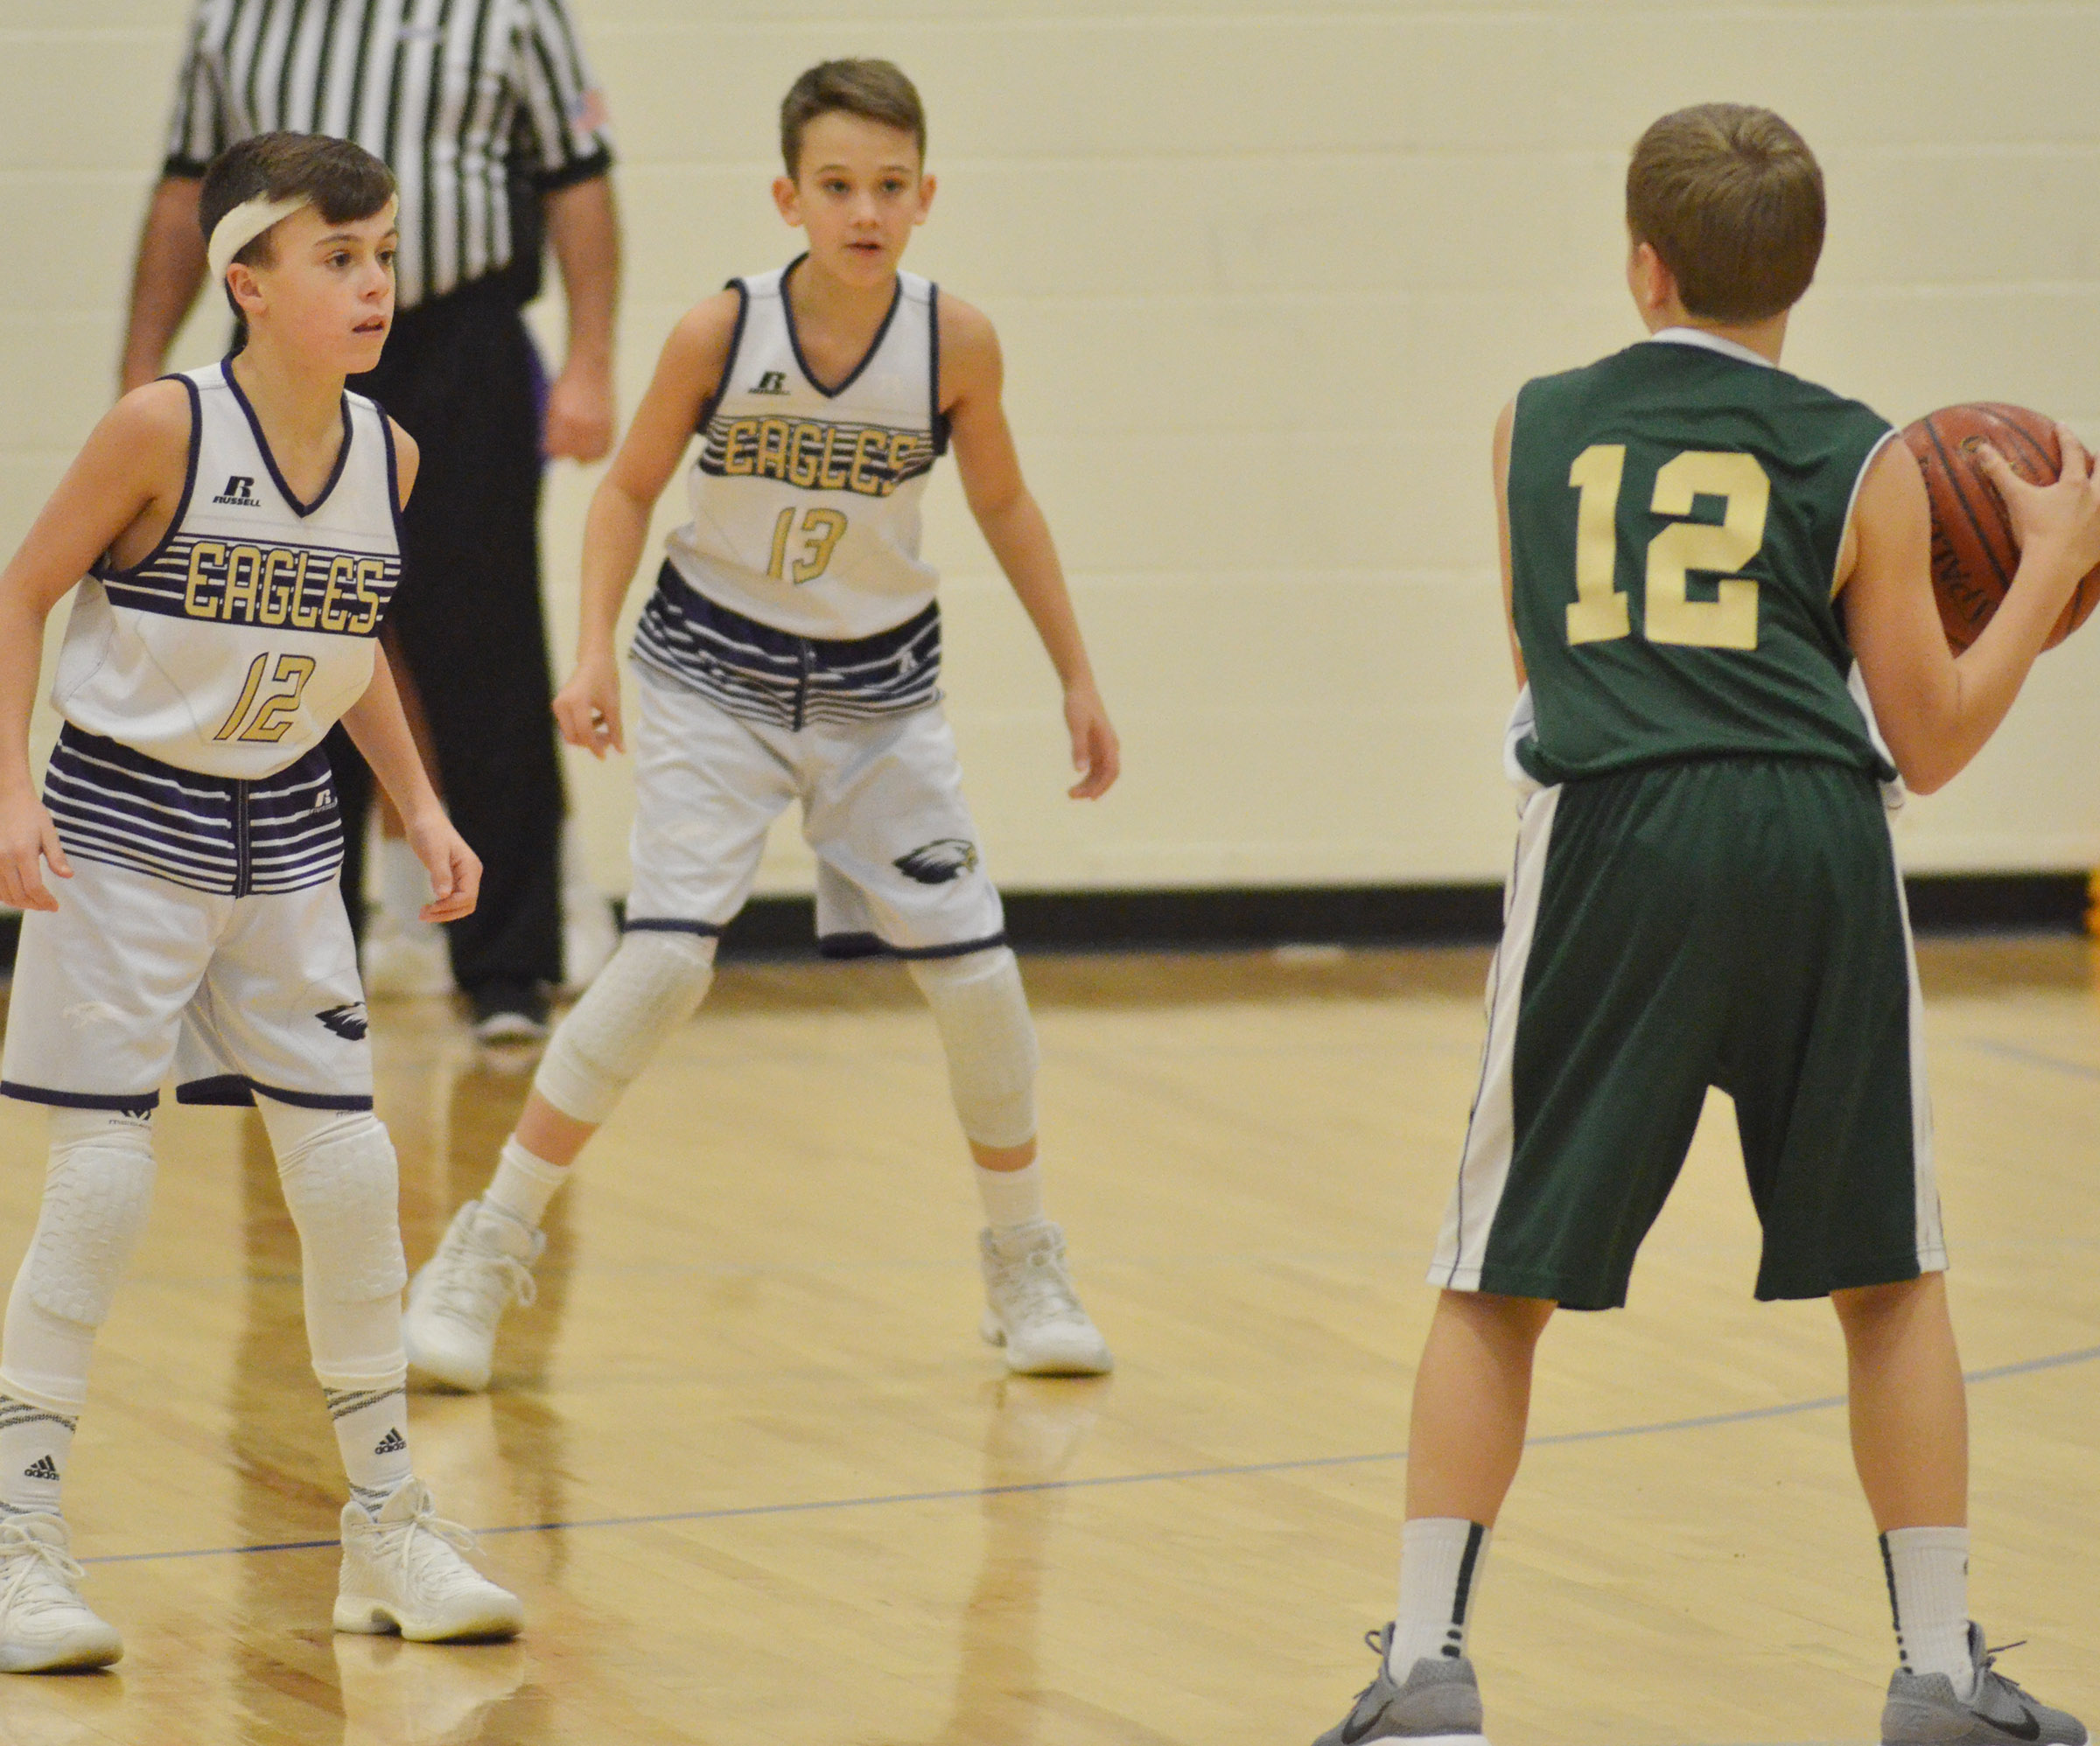 CMS seventh-graders Chase Hord, at left, and Camren Vicari play defense.